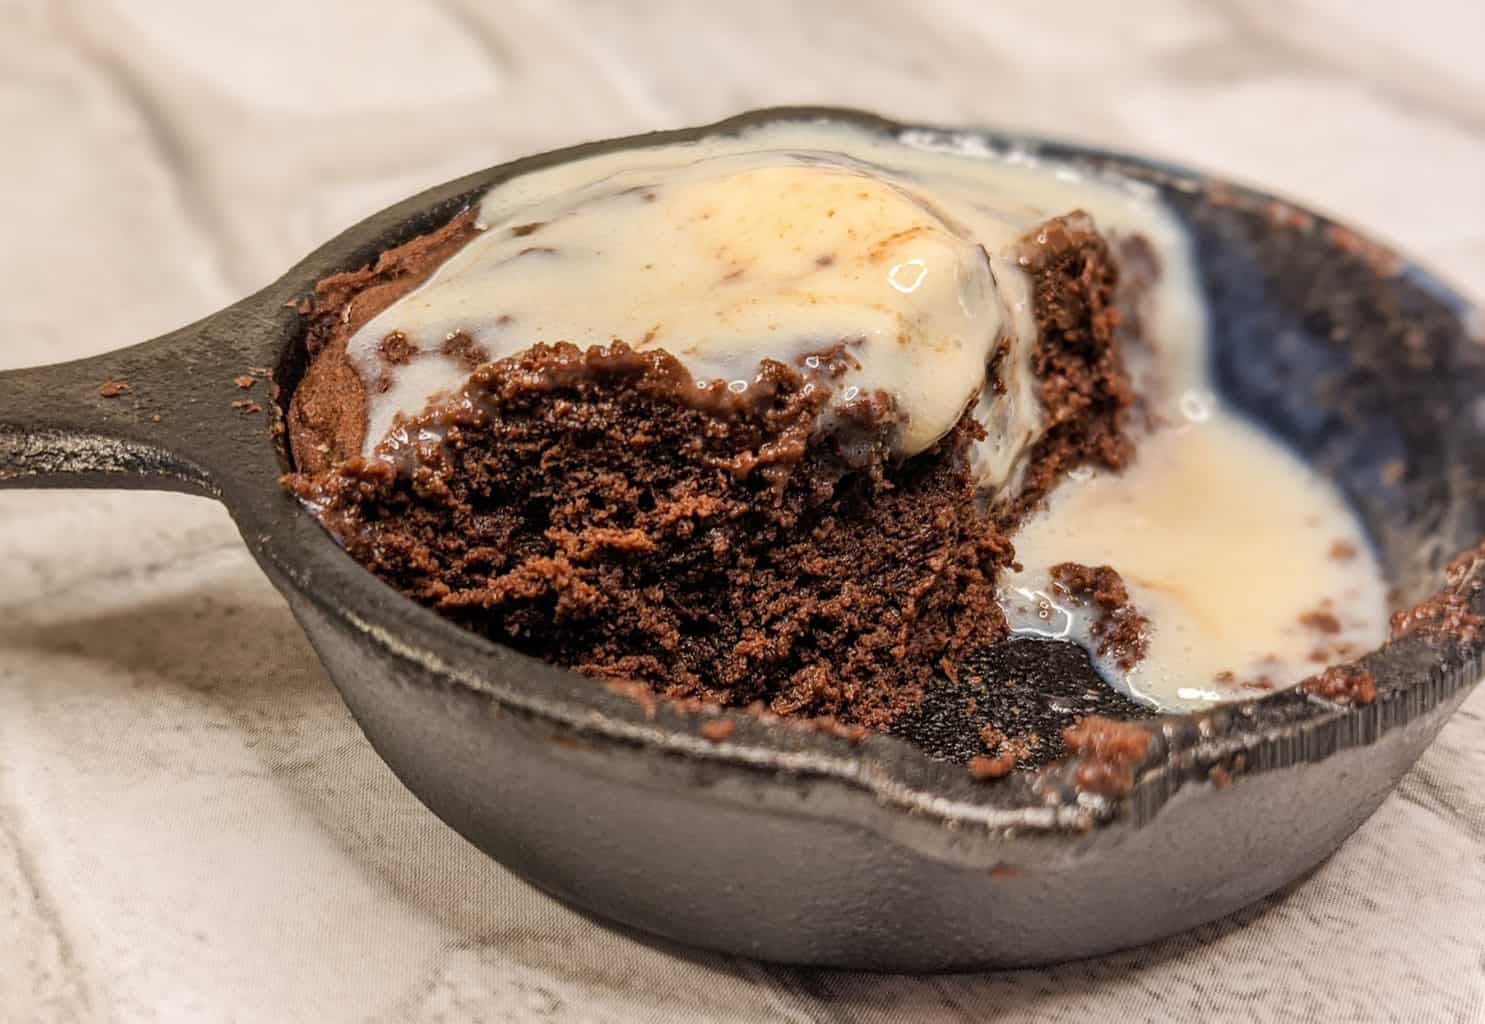 coconut flour keto brownie a la mode in a skillet mini with ice cream melted